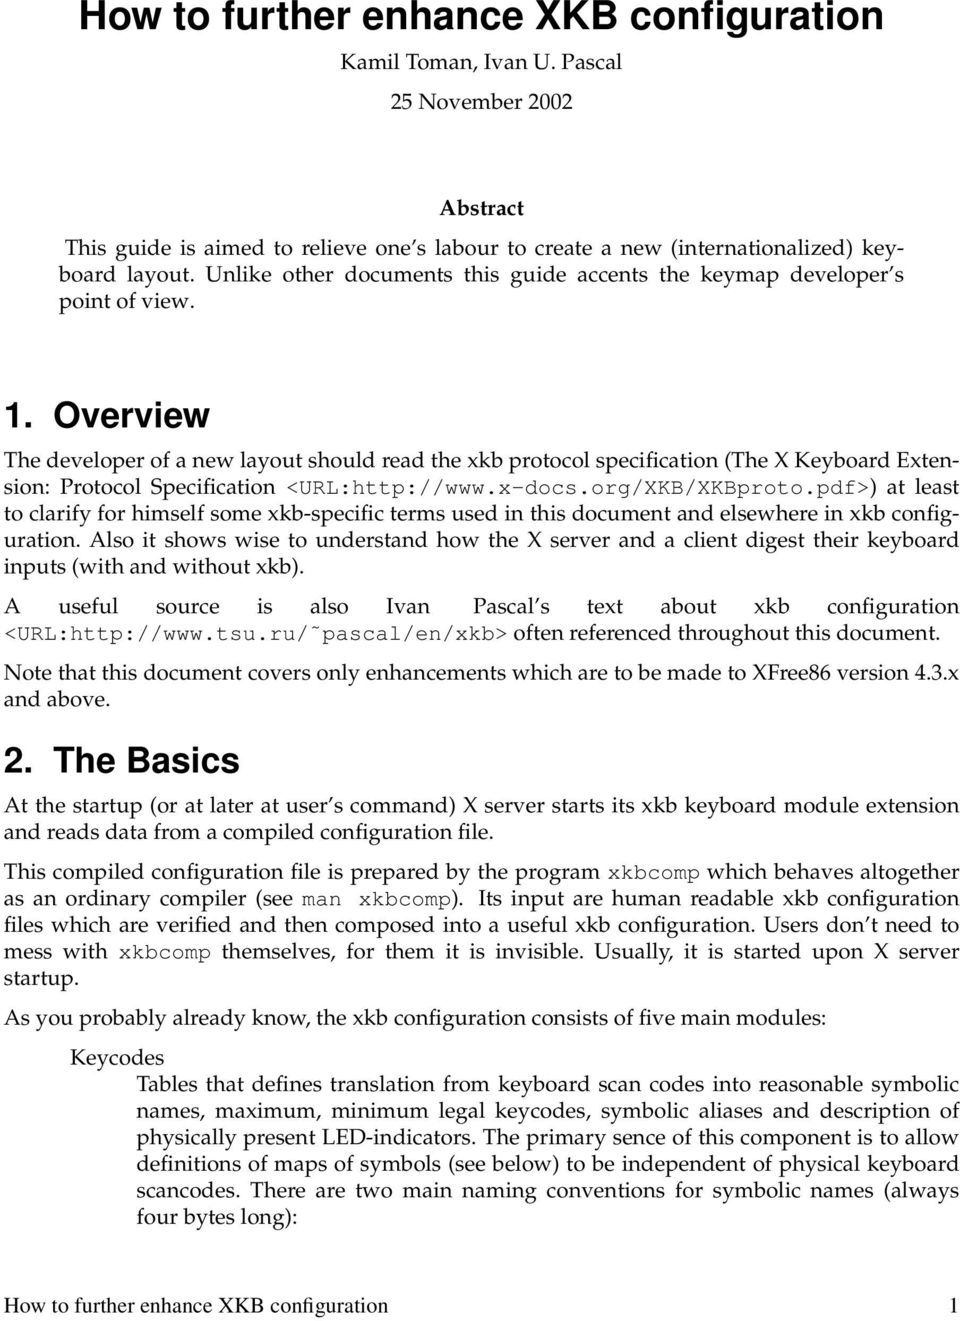 Overview The developer of a new layout should read the xkb protocol specification (The X Keyboard Extension: Protocol Specification <URL:http://www.x-docs.org/XKB/XKBproto.